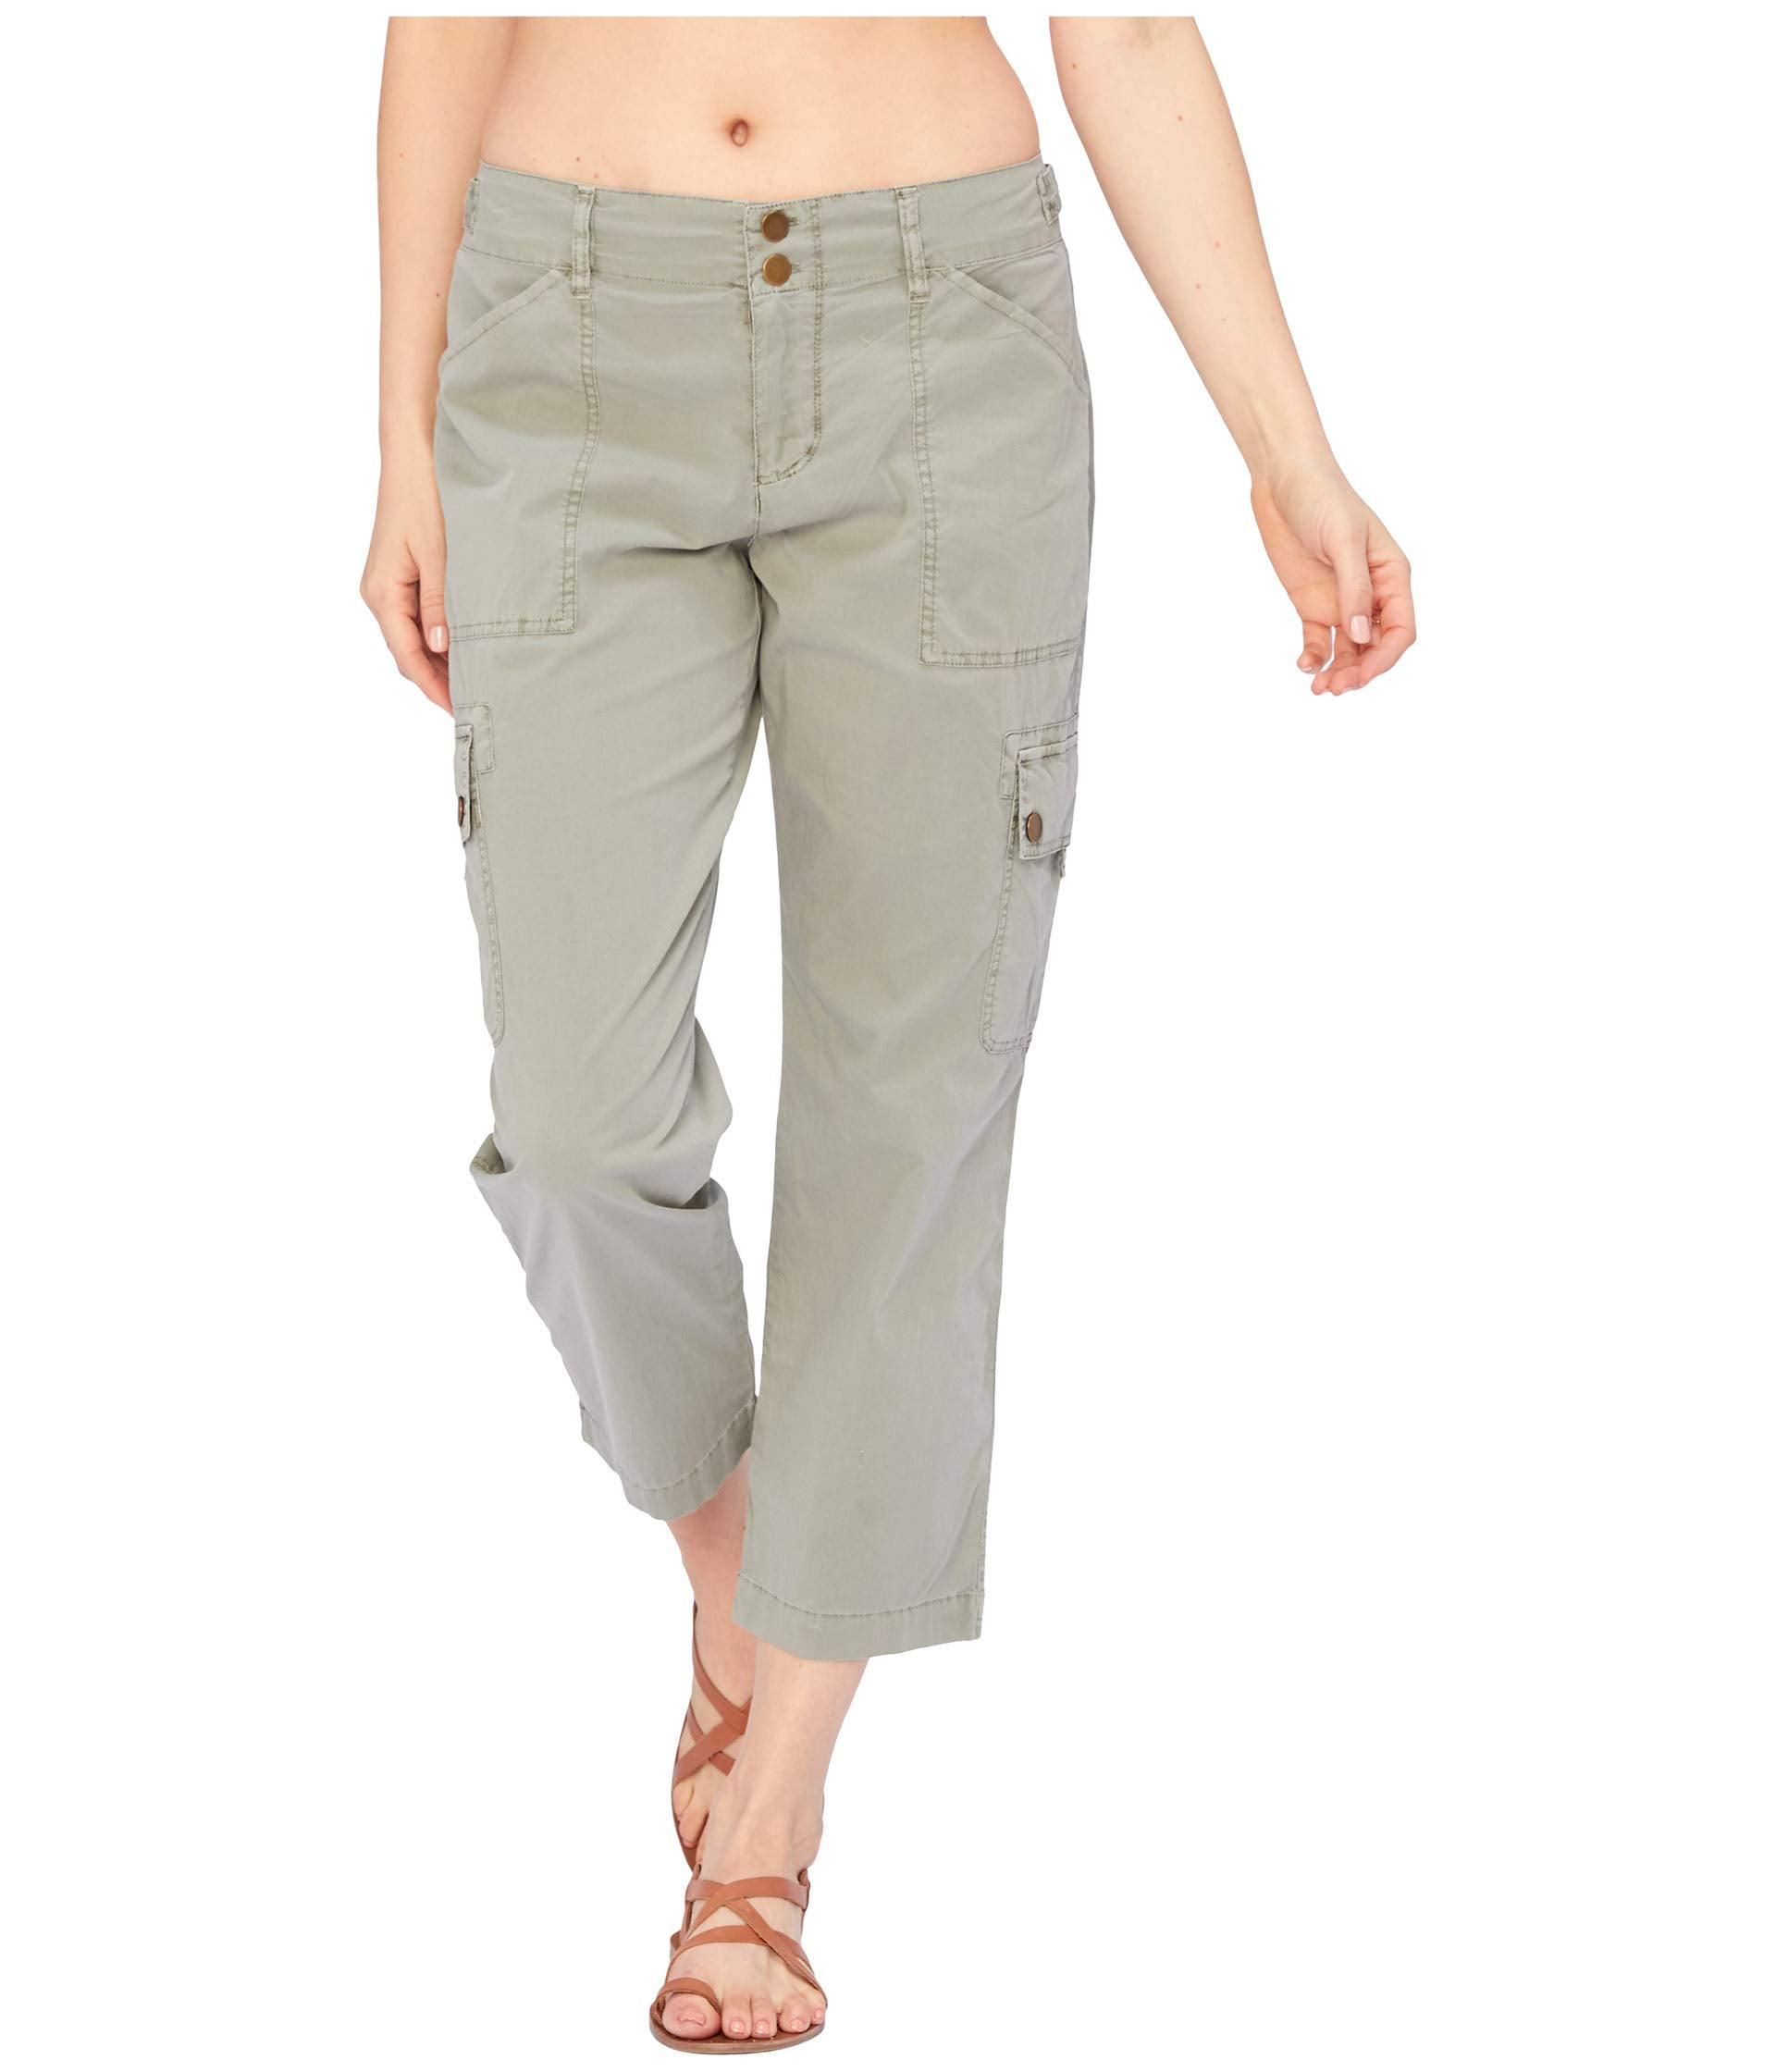 Wearables Alfie Crop Pants in Stretch Poplin